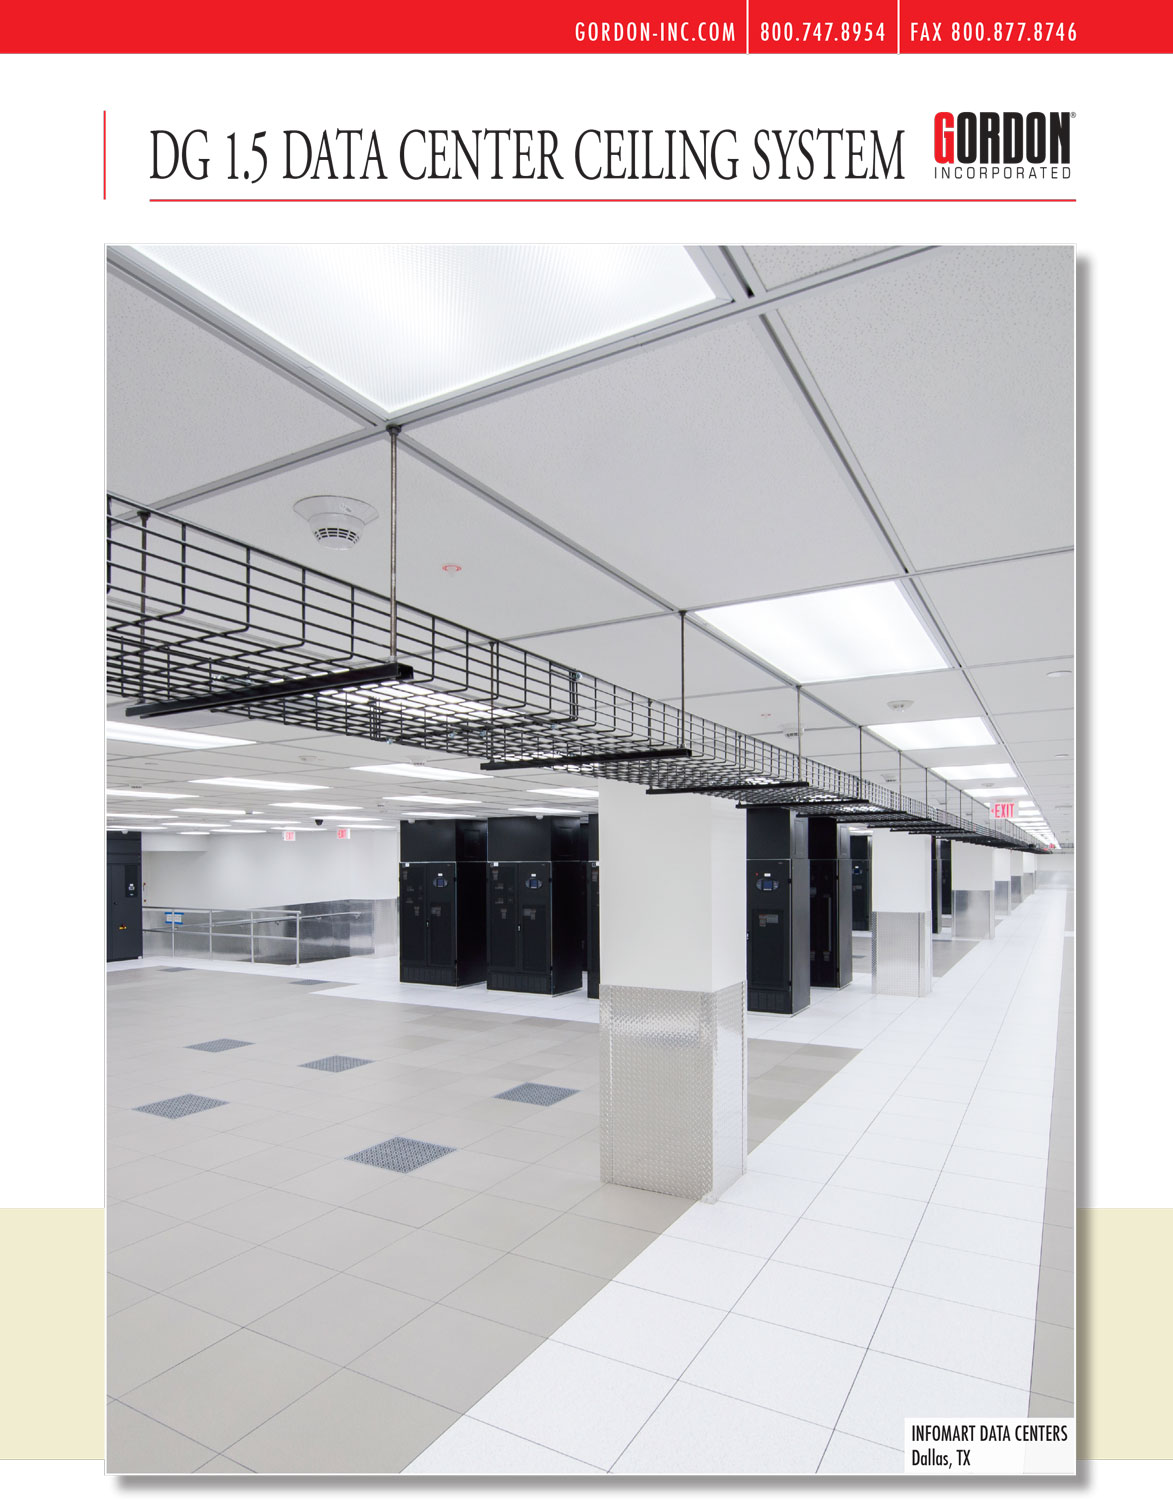 DG 1.5 Data Center Ceiling System, Gordon, Jas Filtration